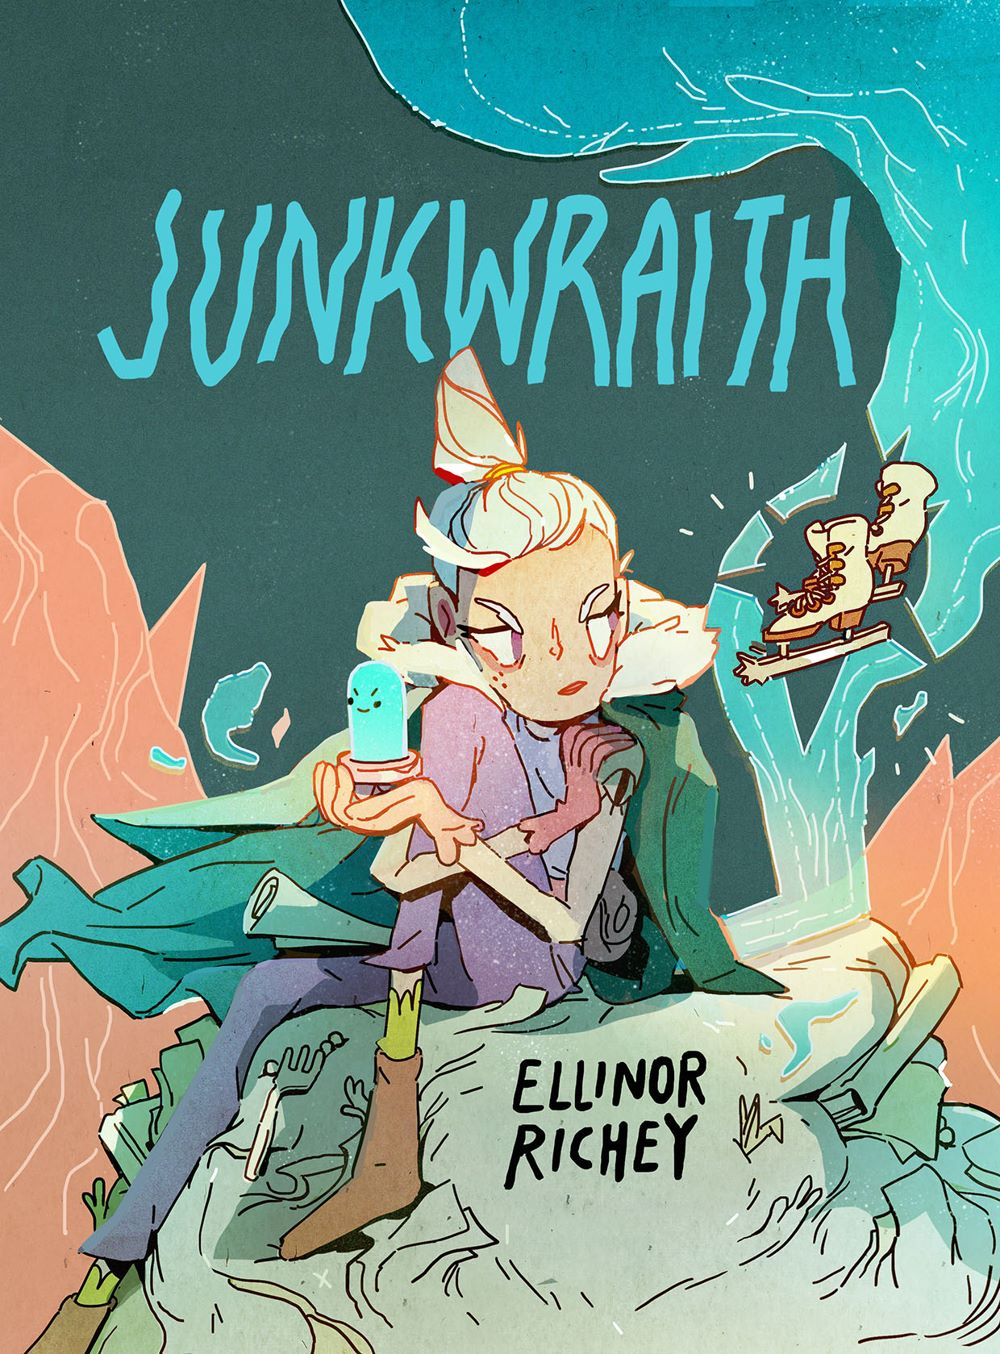 Junkwraith-COVER-hi-res-copy IDW Publishing August 2021 Solicitations